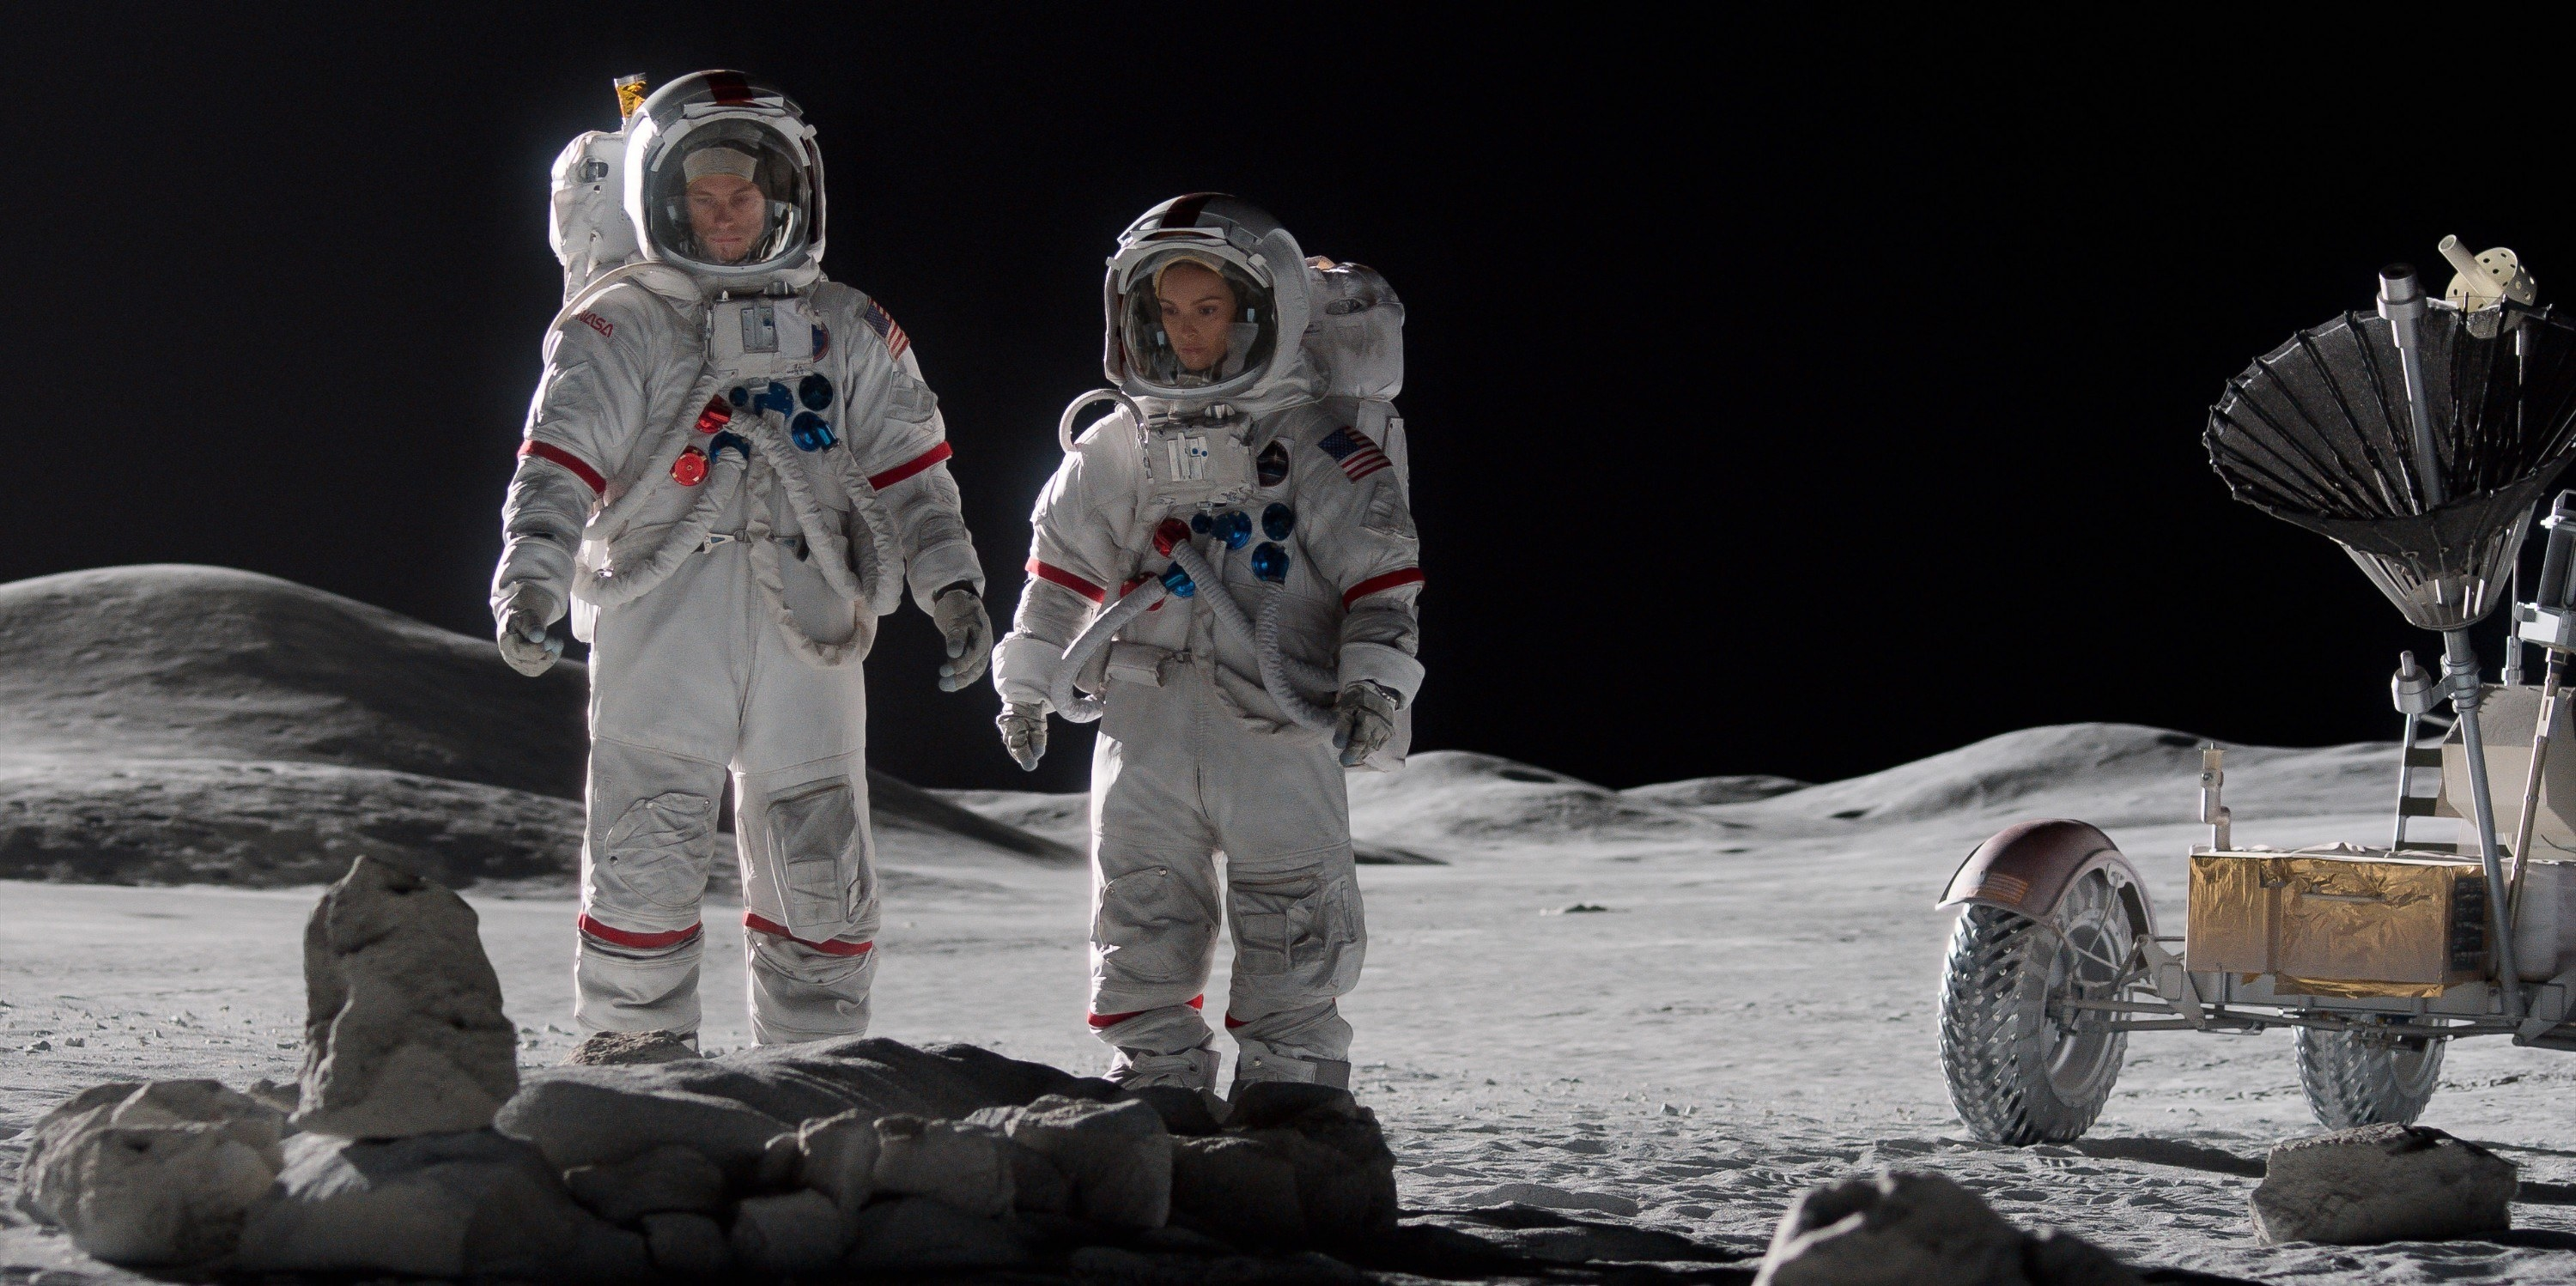 NASA astronauts on the moon in For All Mankind